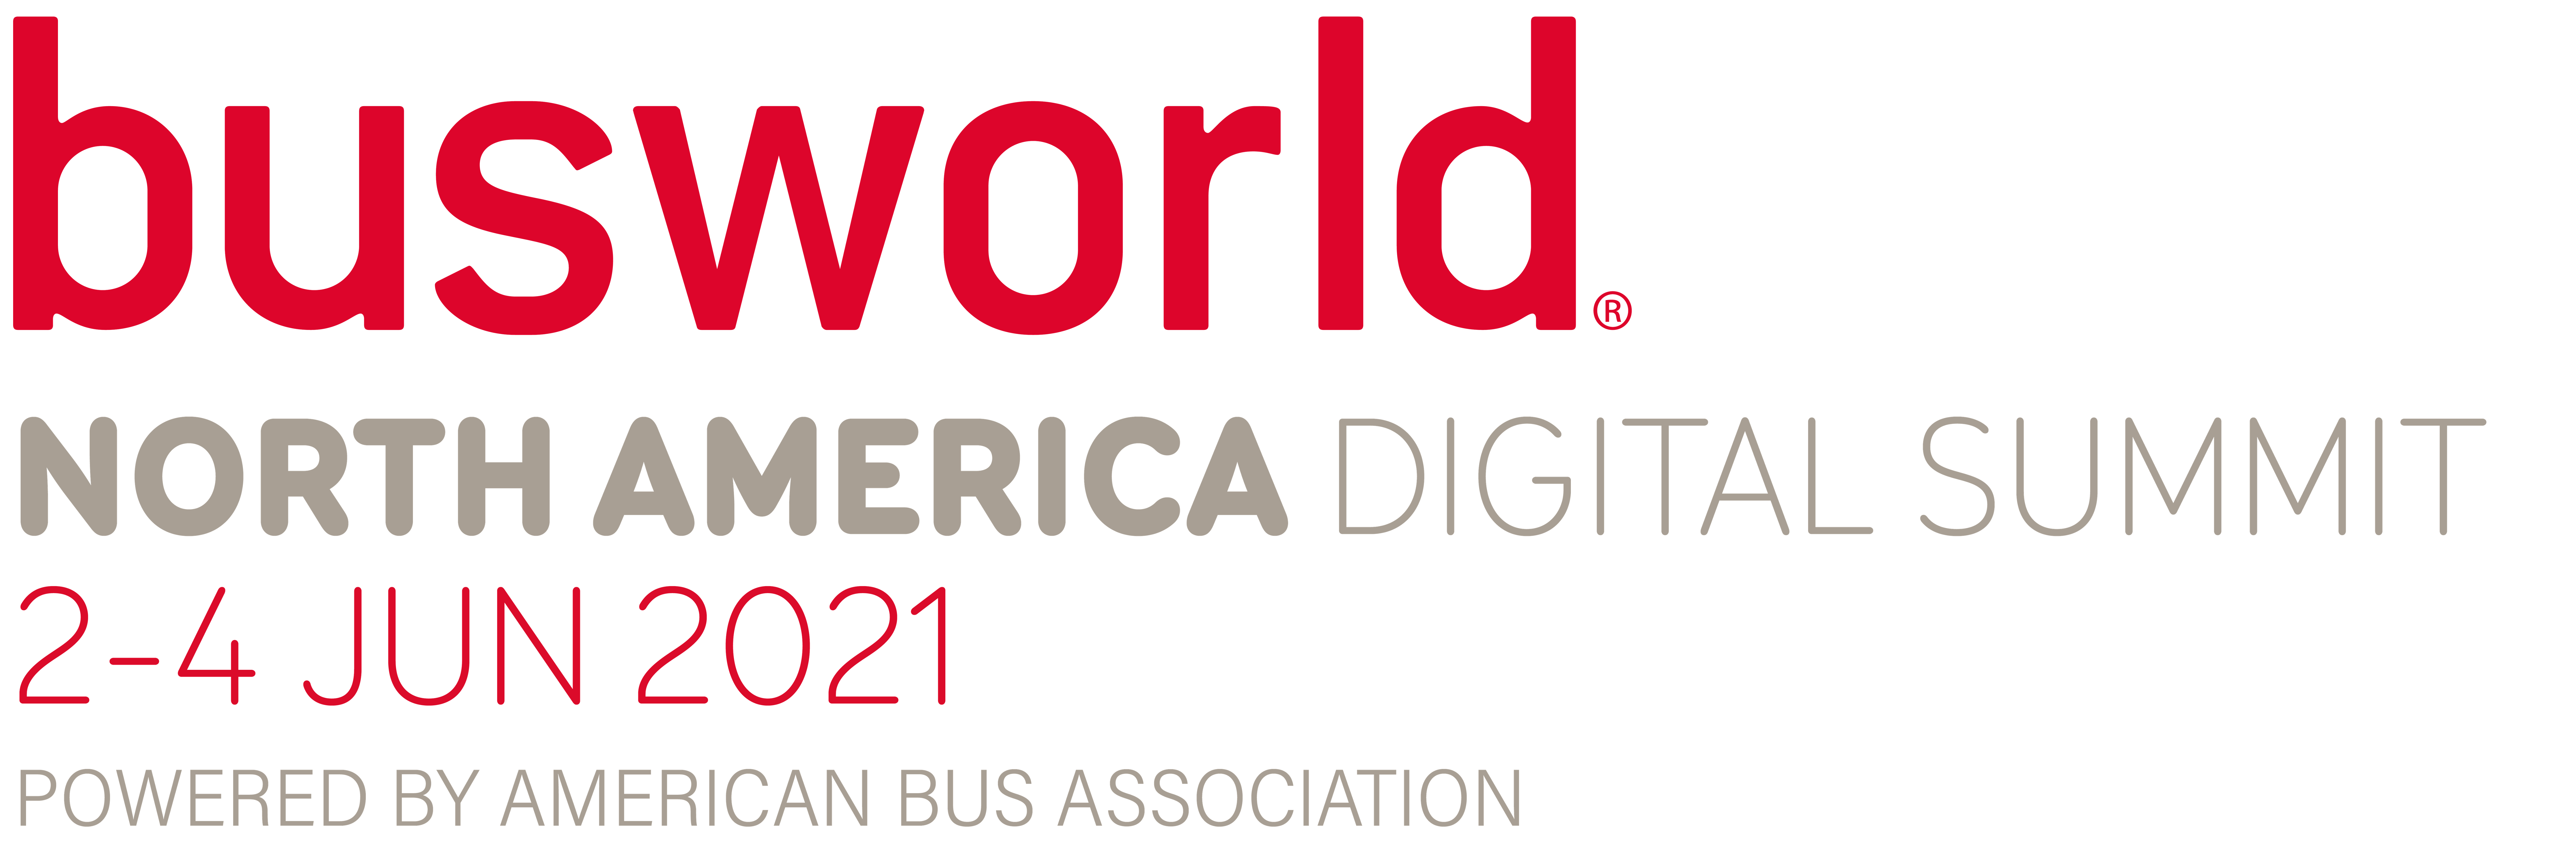 Busworld North America 2021 logo